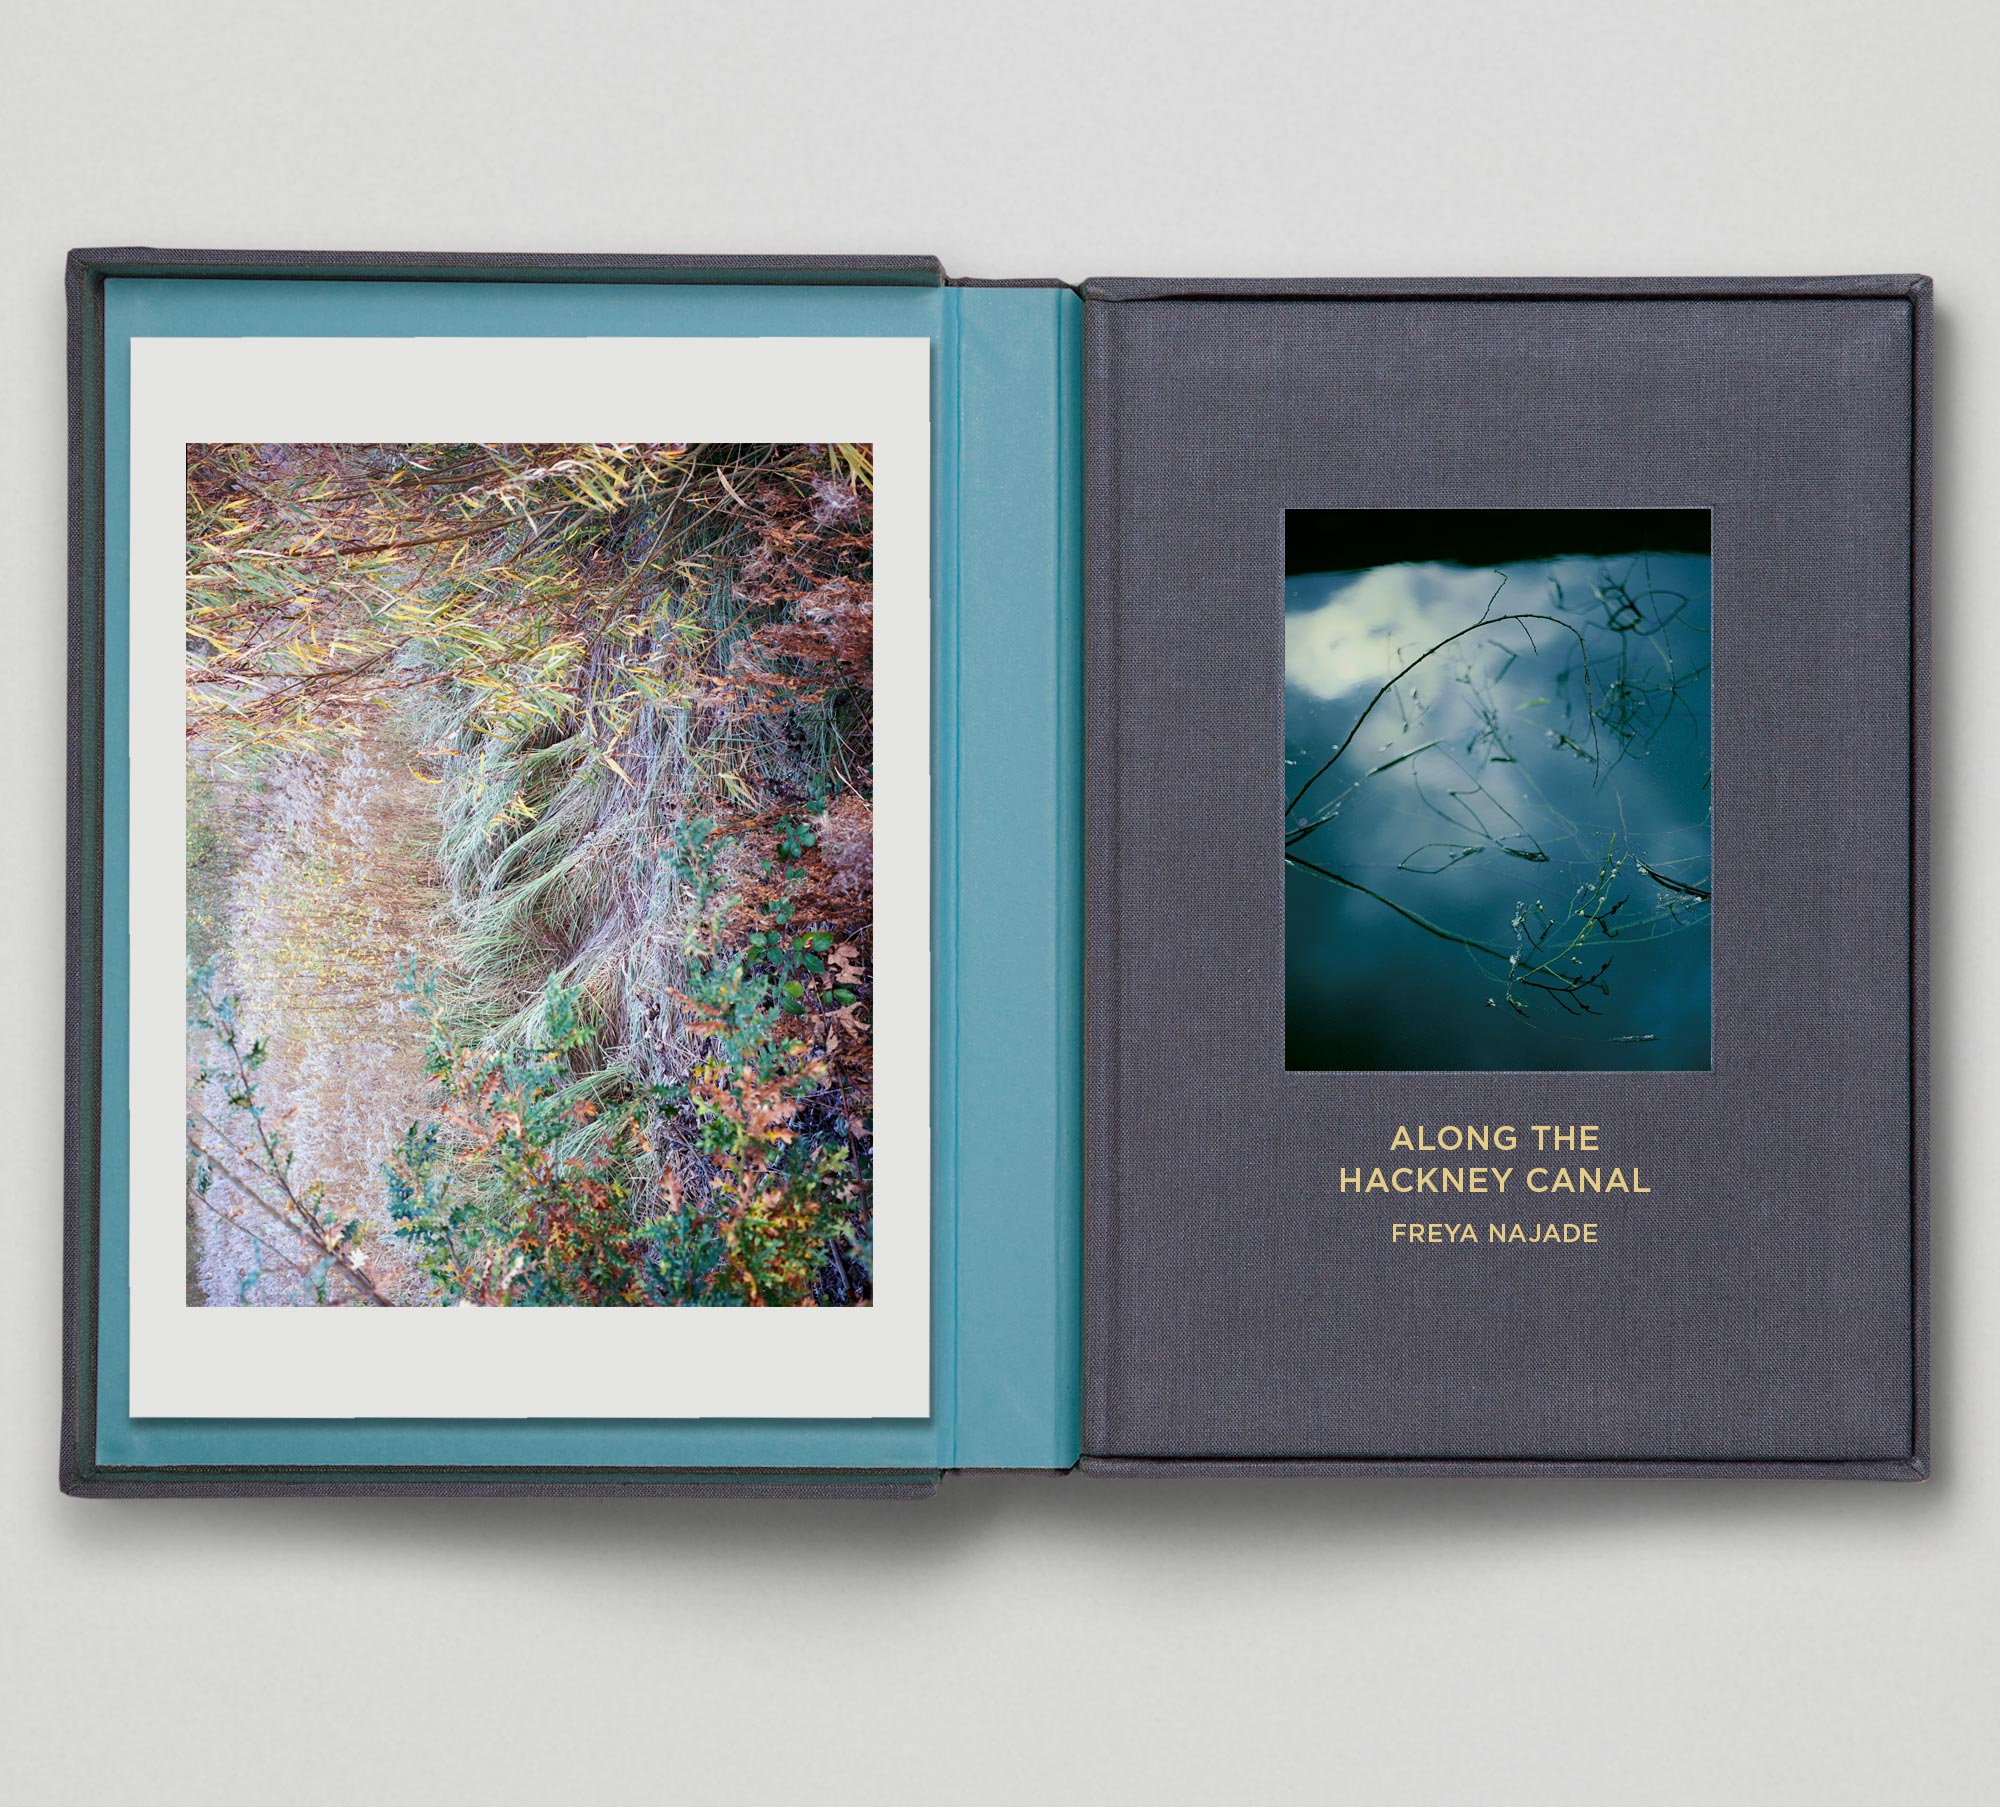 Along the Hackney Canal   Publisher: Hoxton Mini Press Text: Esther Kinsky  Hardcover, gold foiled The Collector's Edition is presented in a bespoke cloth-covered clamshell box complete with signed and numbered limited edition print. 14.5 x 20.5 cm 96 pages English September 2016